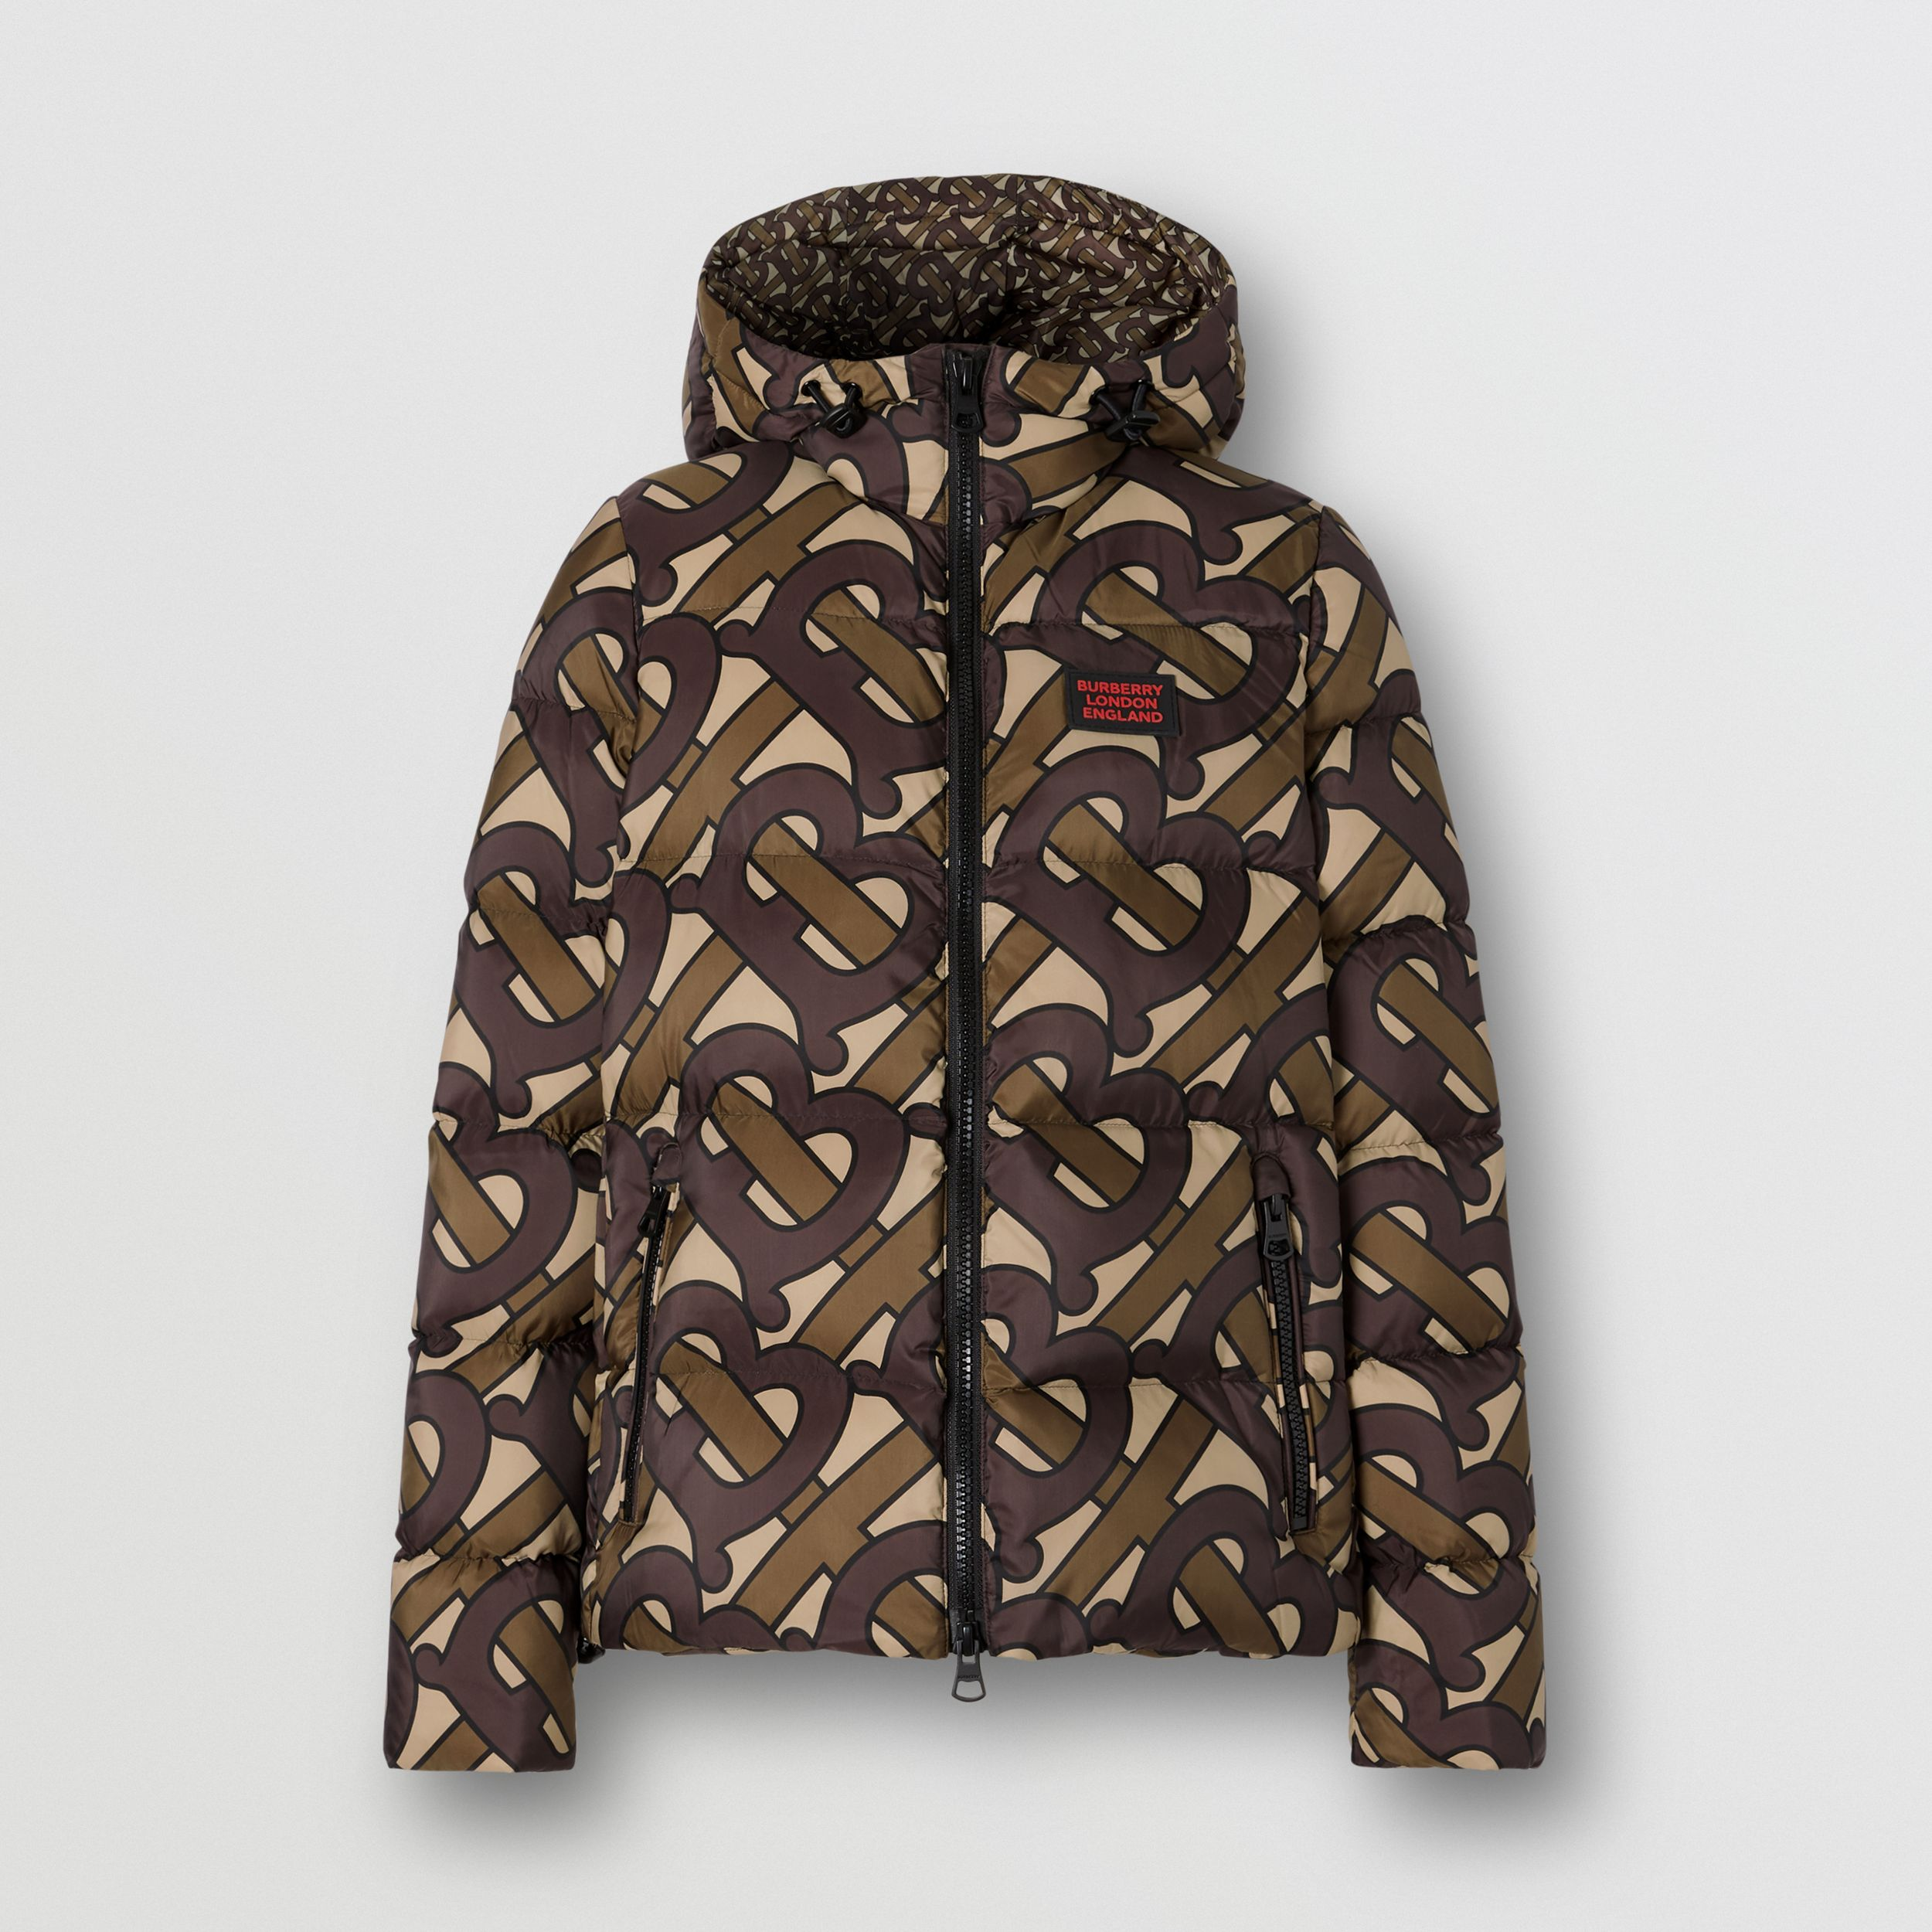 Monogram Print Hooded Puffer Jacket in Bridle Brown - Women | Burberry United States - 4